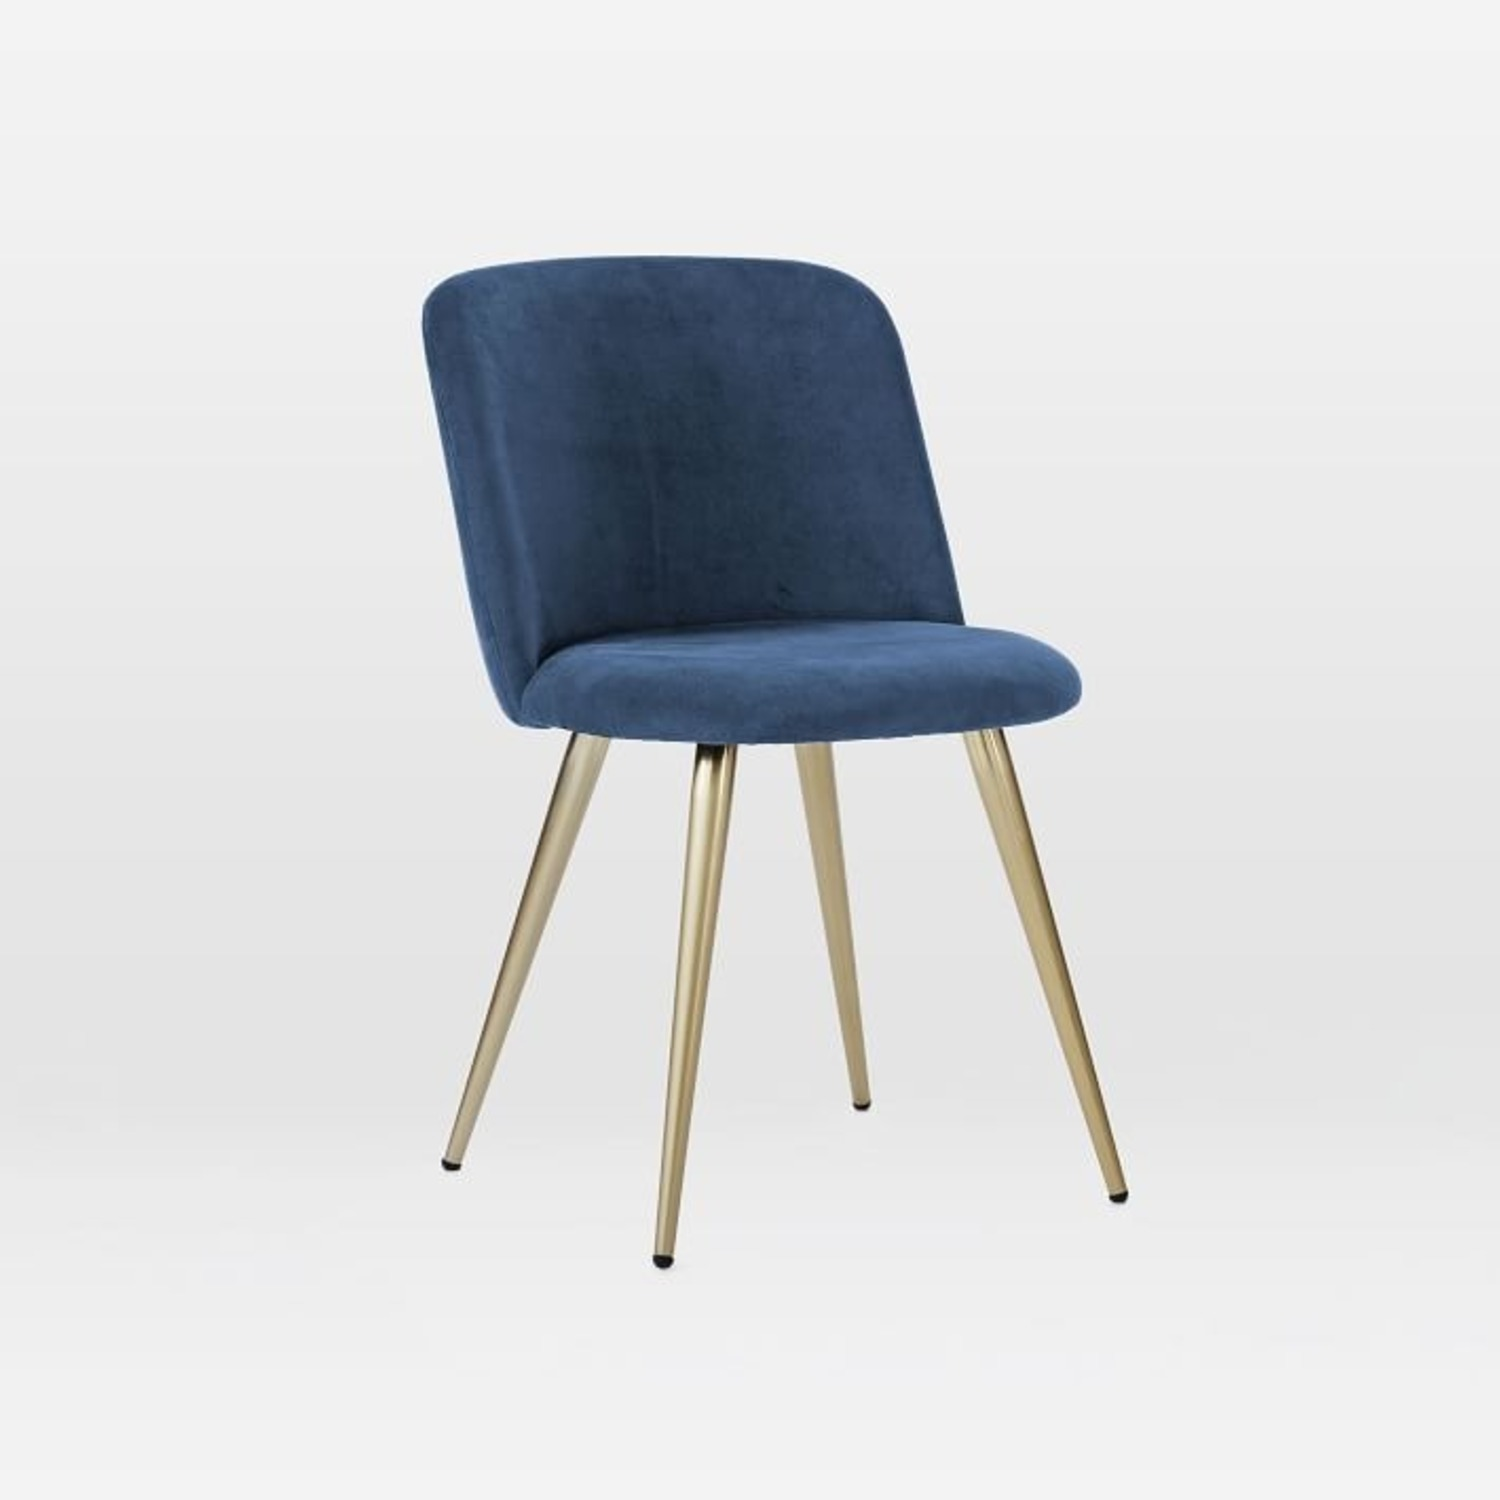 West Elm Lila Upholstered Dining Chair - image-1